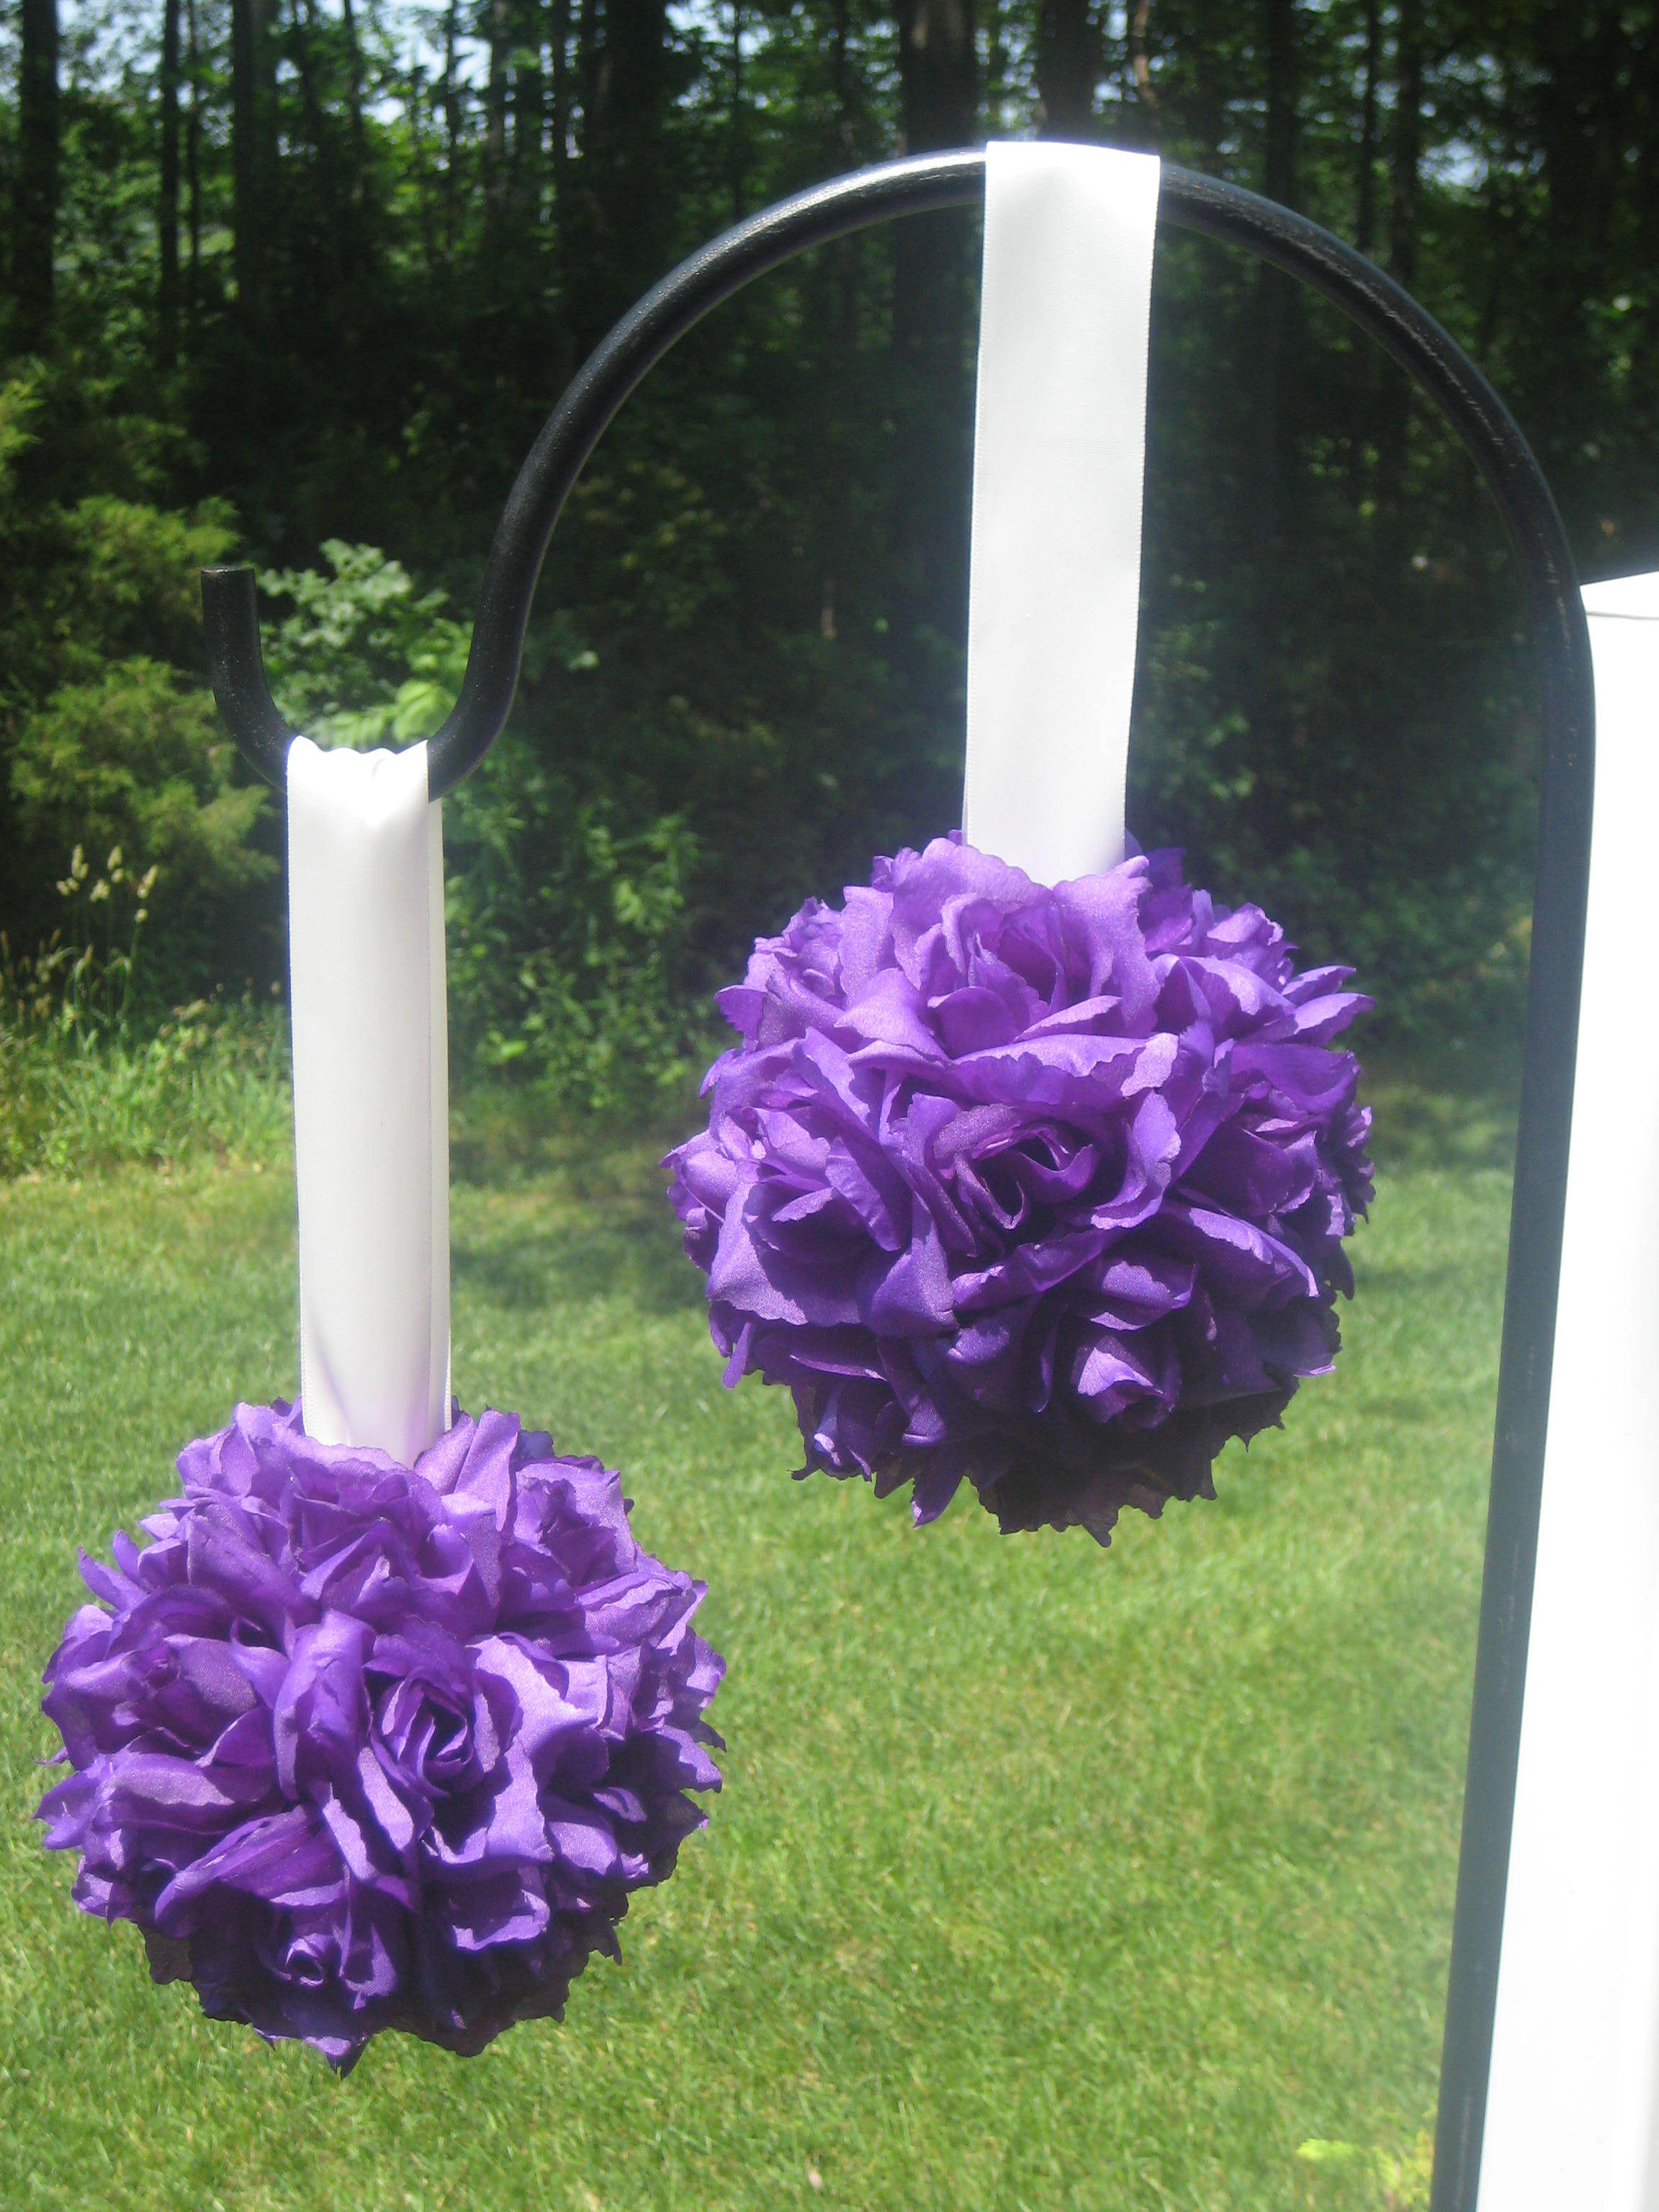 Ceremony, Inspiration, Reception, Flowers & Decor, Decor, Bridesmaids, Bridesmaids Dresses, Fashion, white, red, purple, gold, Ceremony Flowers, Aisle Decor, Bride Bouquets, Bridesmaid Bouquets, Flowers, Bouquet, Girl, Bridesmaid, Board, Aisle, Kissing, Pomanders, Balls, Flower Wedding Dresses